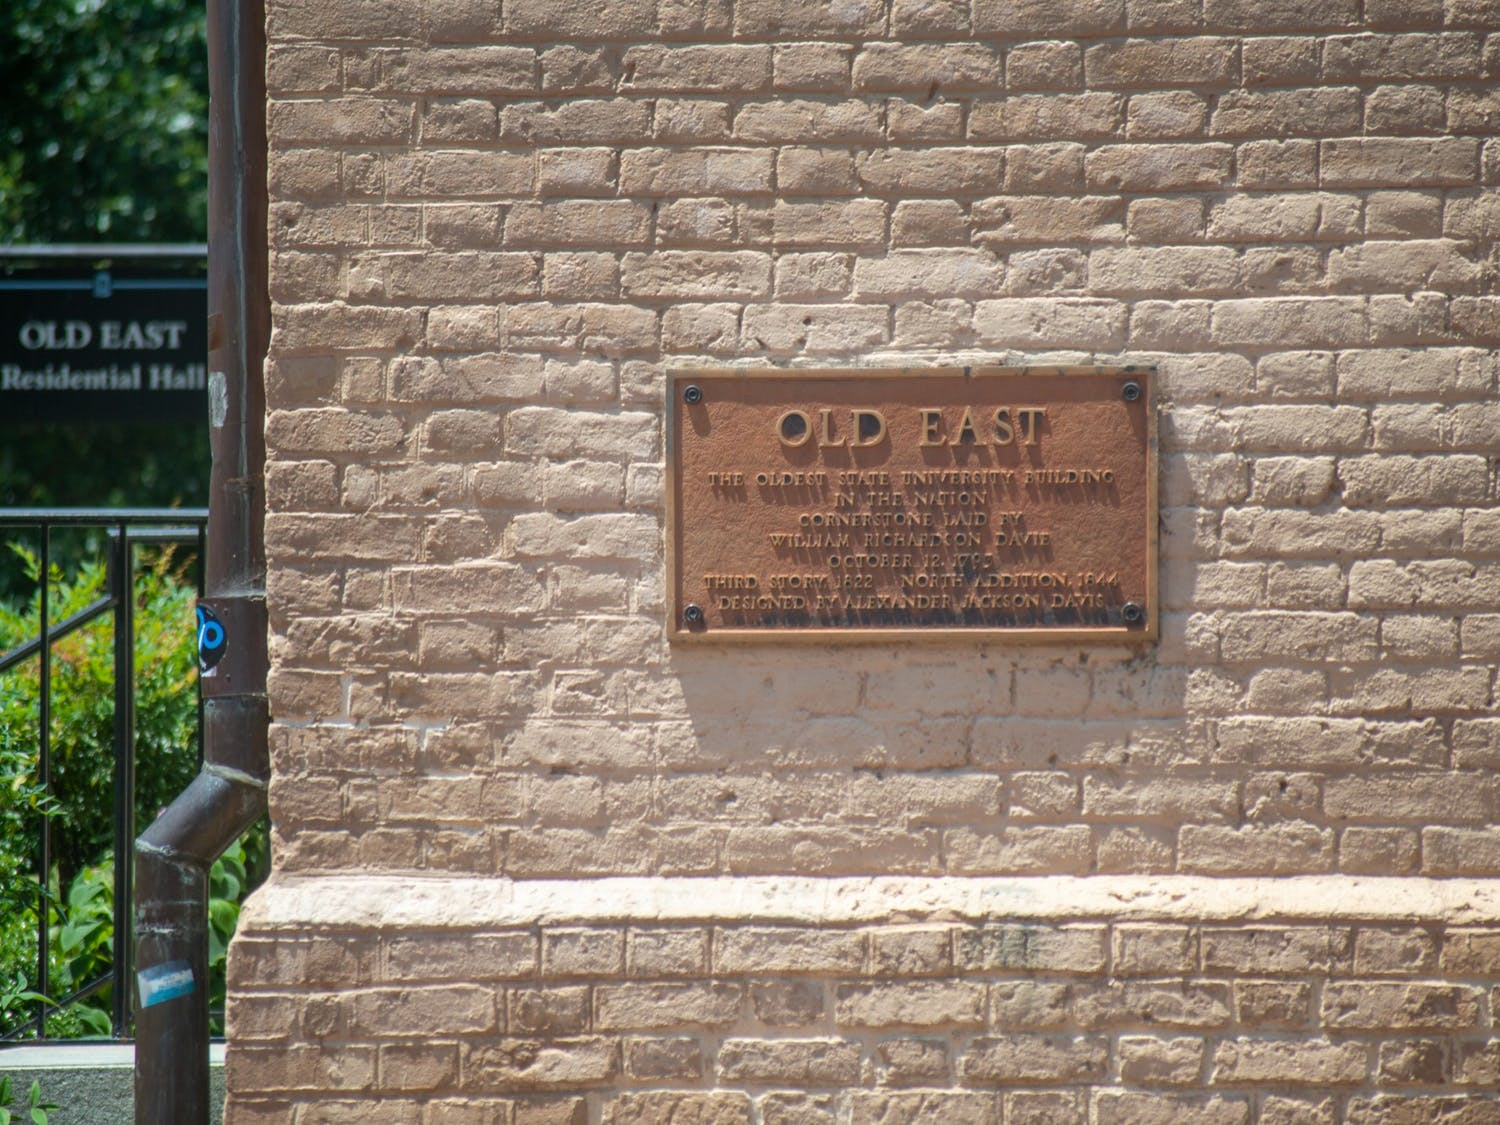 Old East, as pictured on June 6, 2021, is the oldest state university building in the nation.